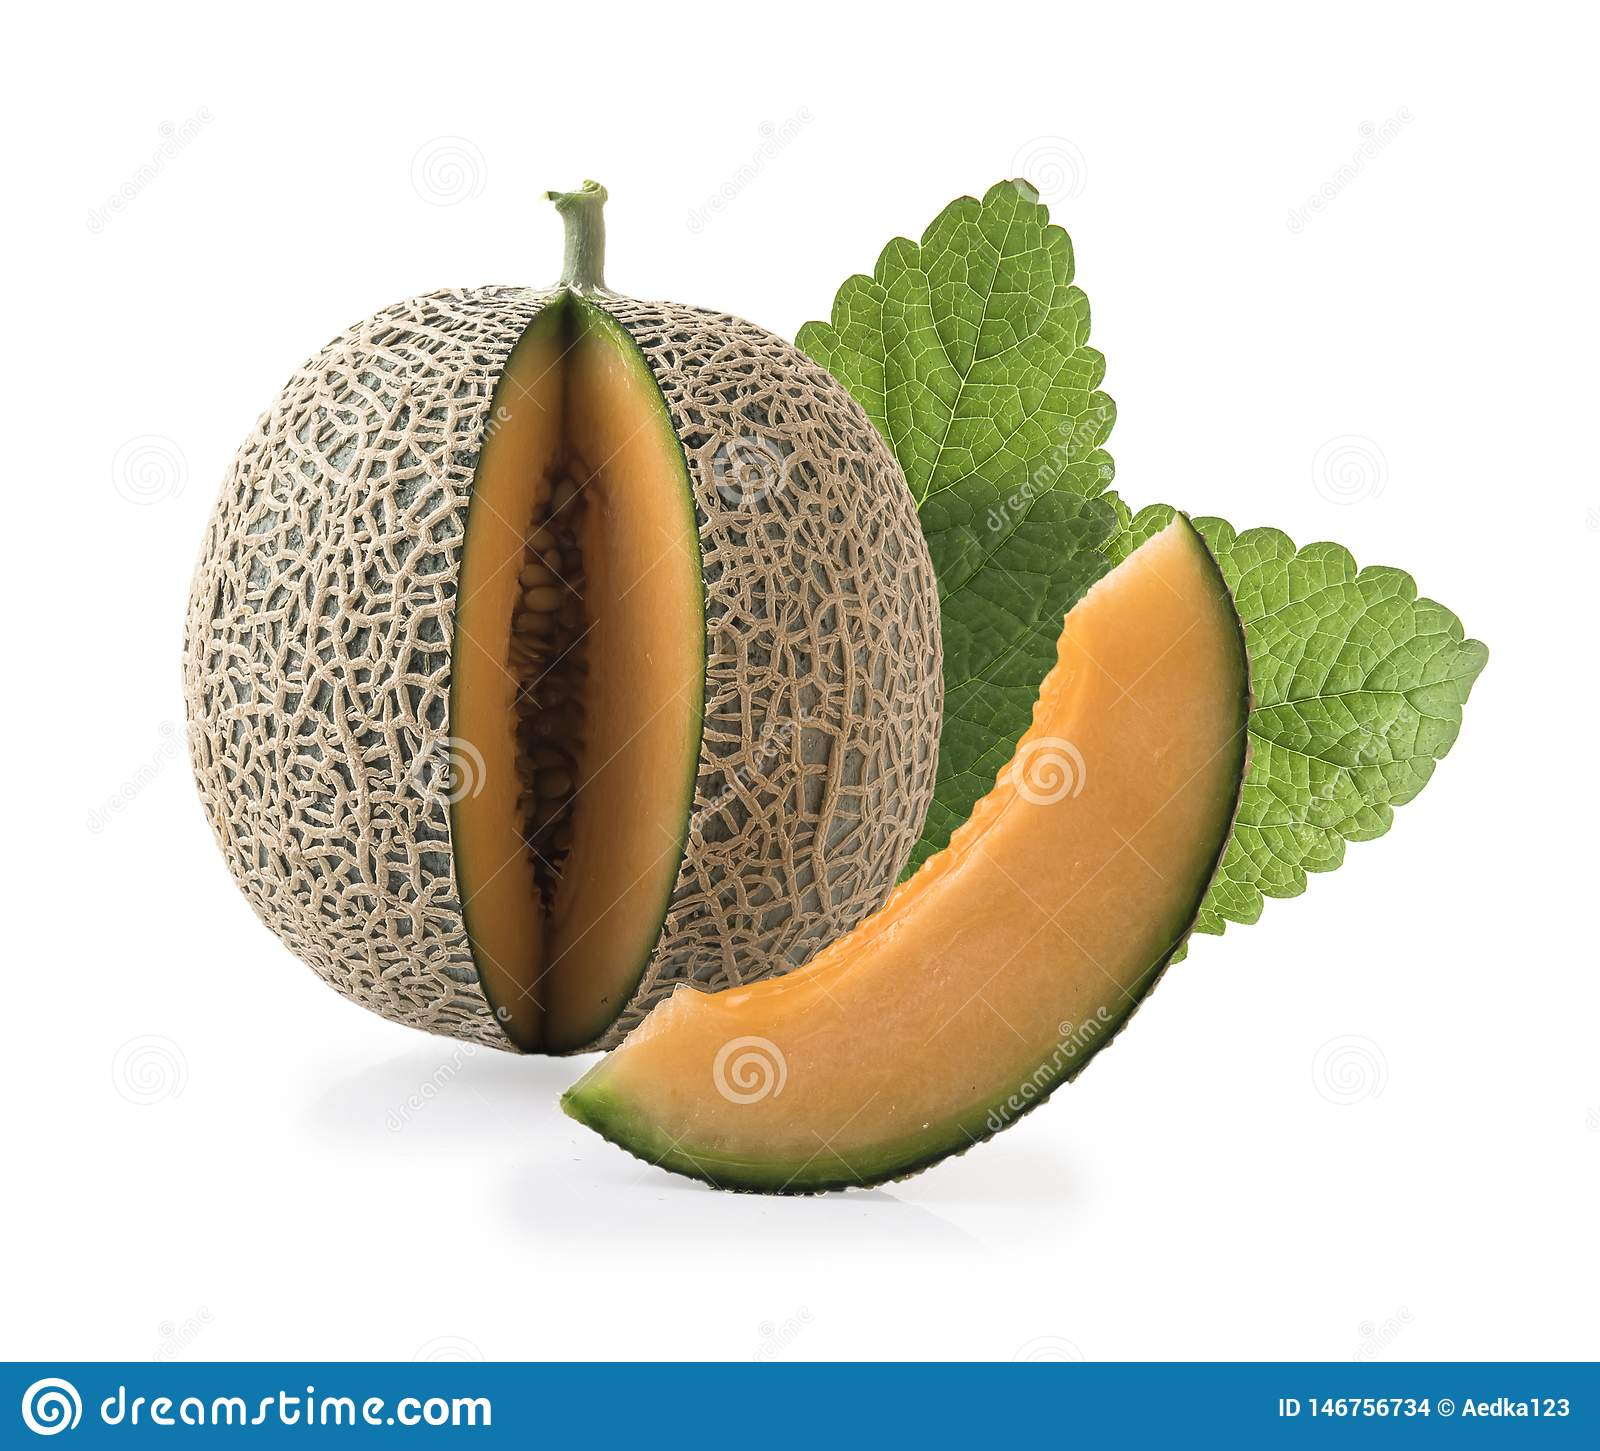 Cantaloupe Melon Slices On White Background Stock Photo Image Of Diet Juice 146756734 Nutritional information, diet info and calories in cantaloupe from farmers market. dreamstime com